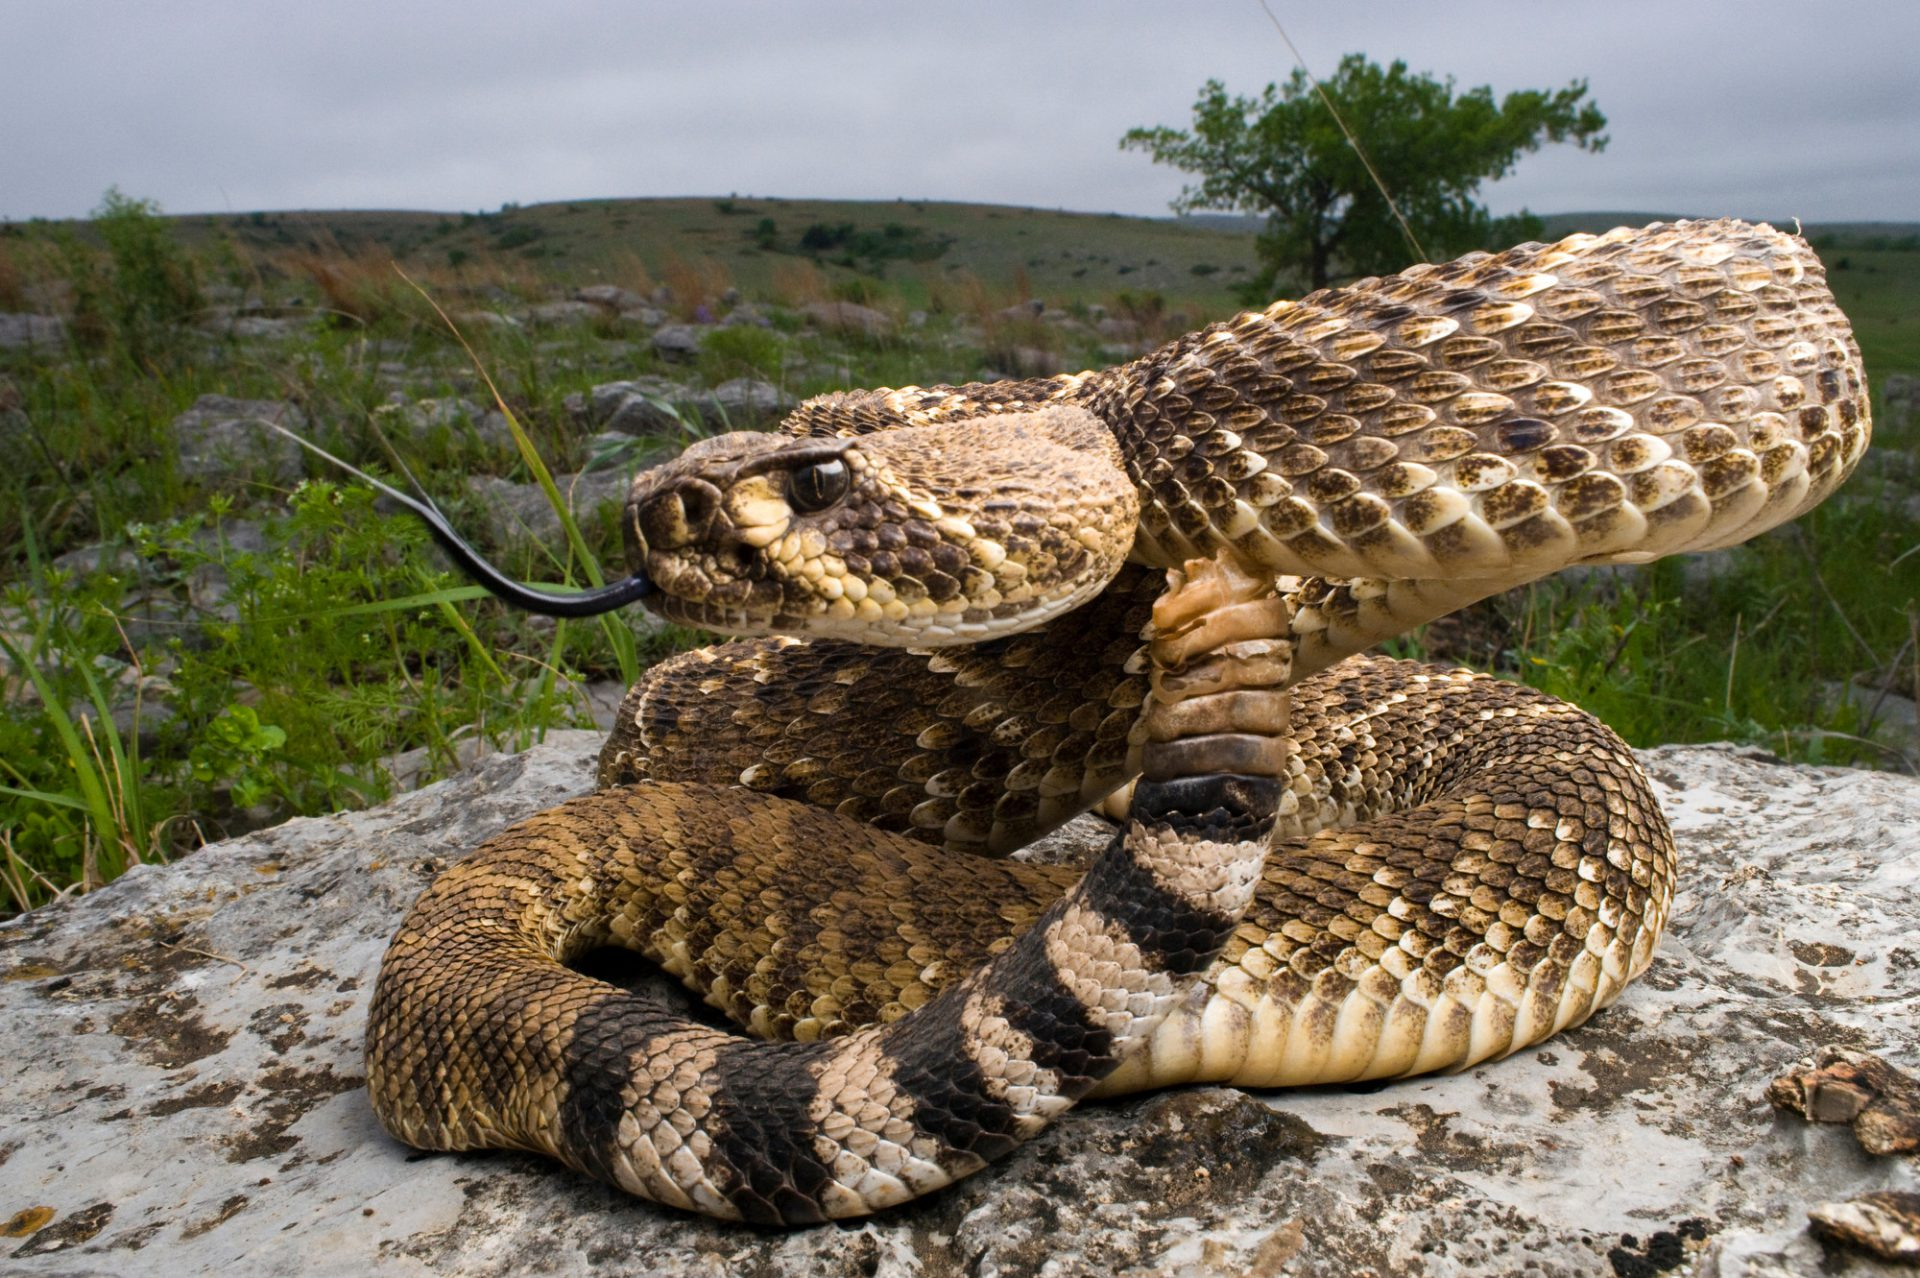 Photo: A western diamondback rattlesnake (Crotalus atrox) in the foothills of the Wichita Mountains in Oklahoma.